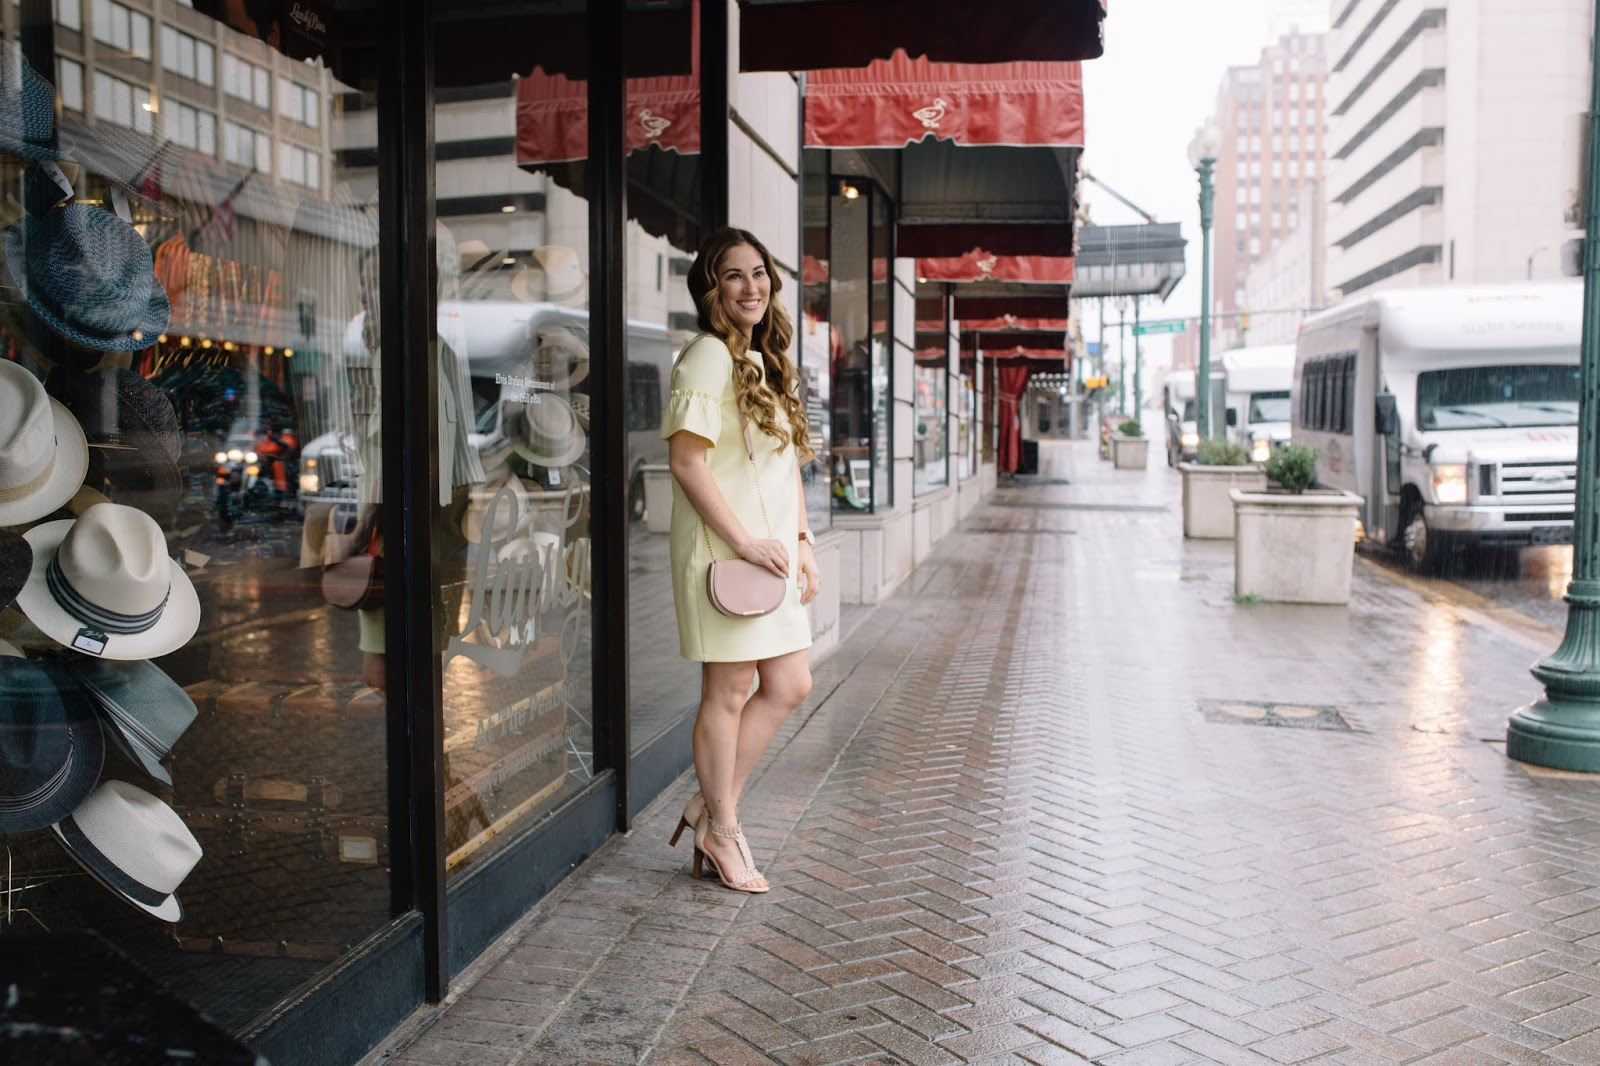 Memphis Staycation: Peabody Hotel Memphis by popular blogger Laura of Walking in Memphis in High Heels